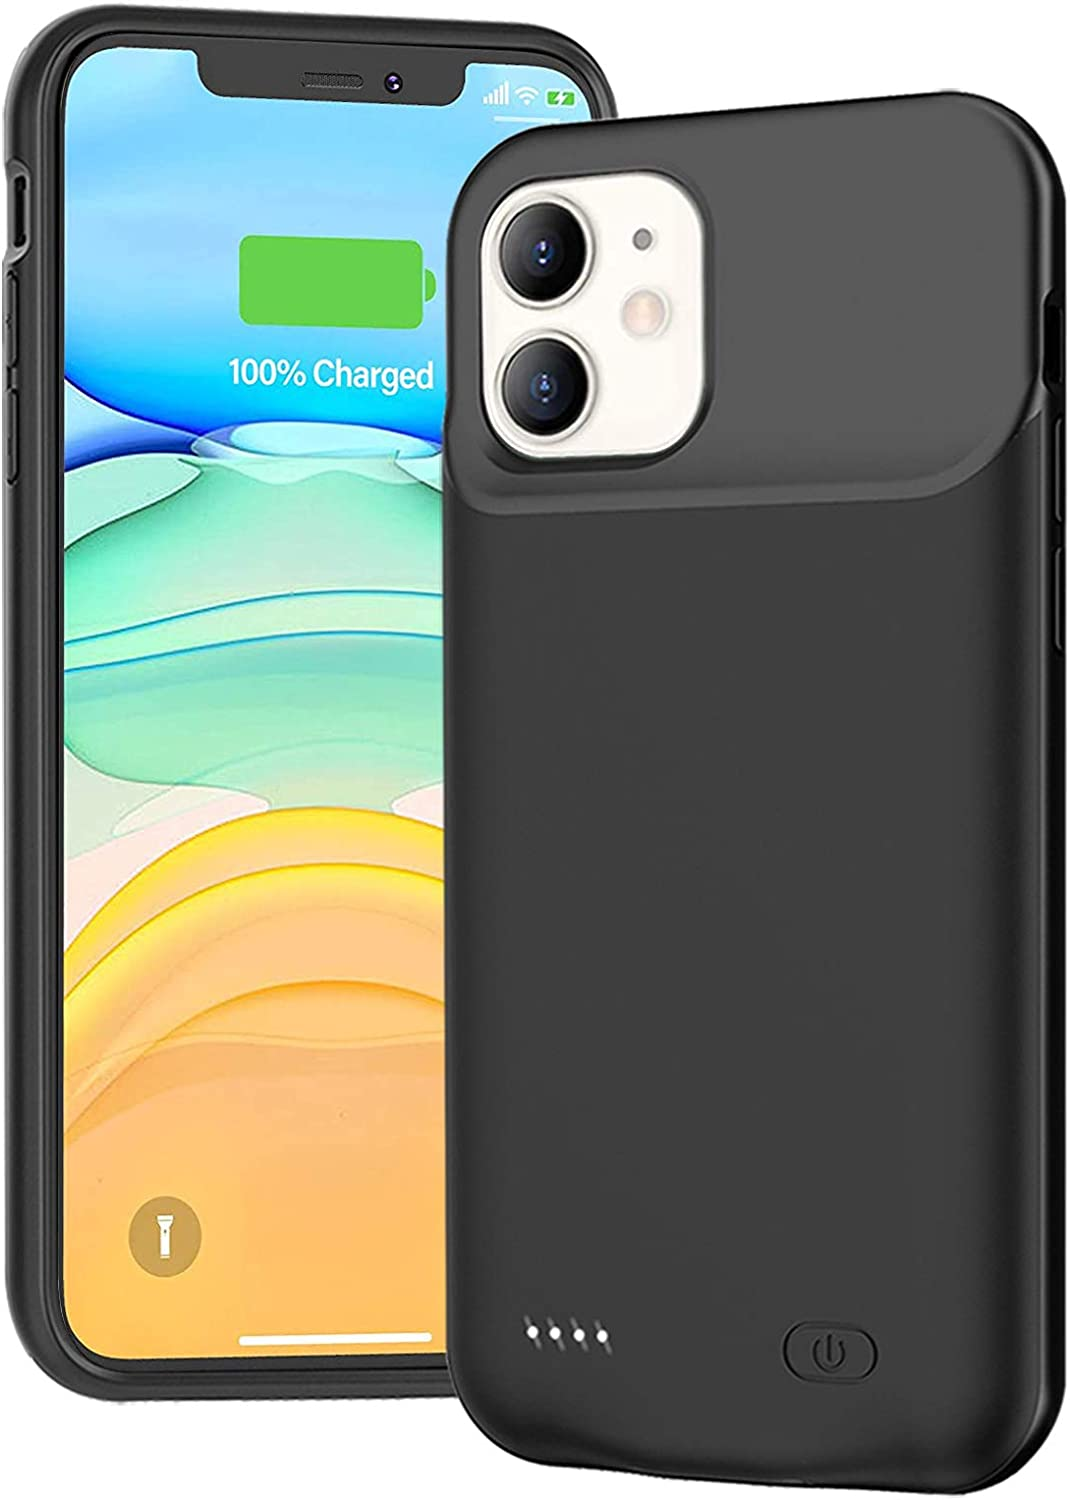 Battery Case Directly managed store Nippon regular agency for iPhone 11 Portable Ultra-Slim 7000mAh Charger